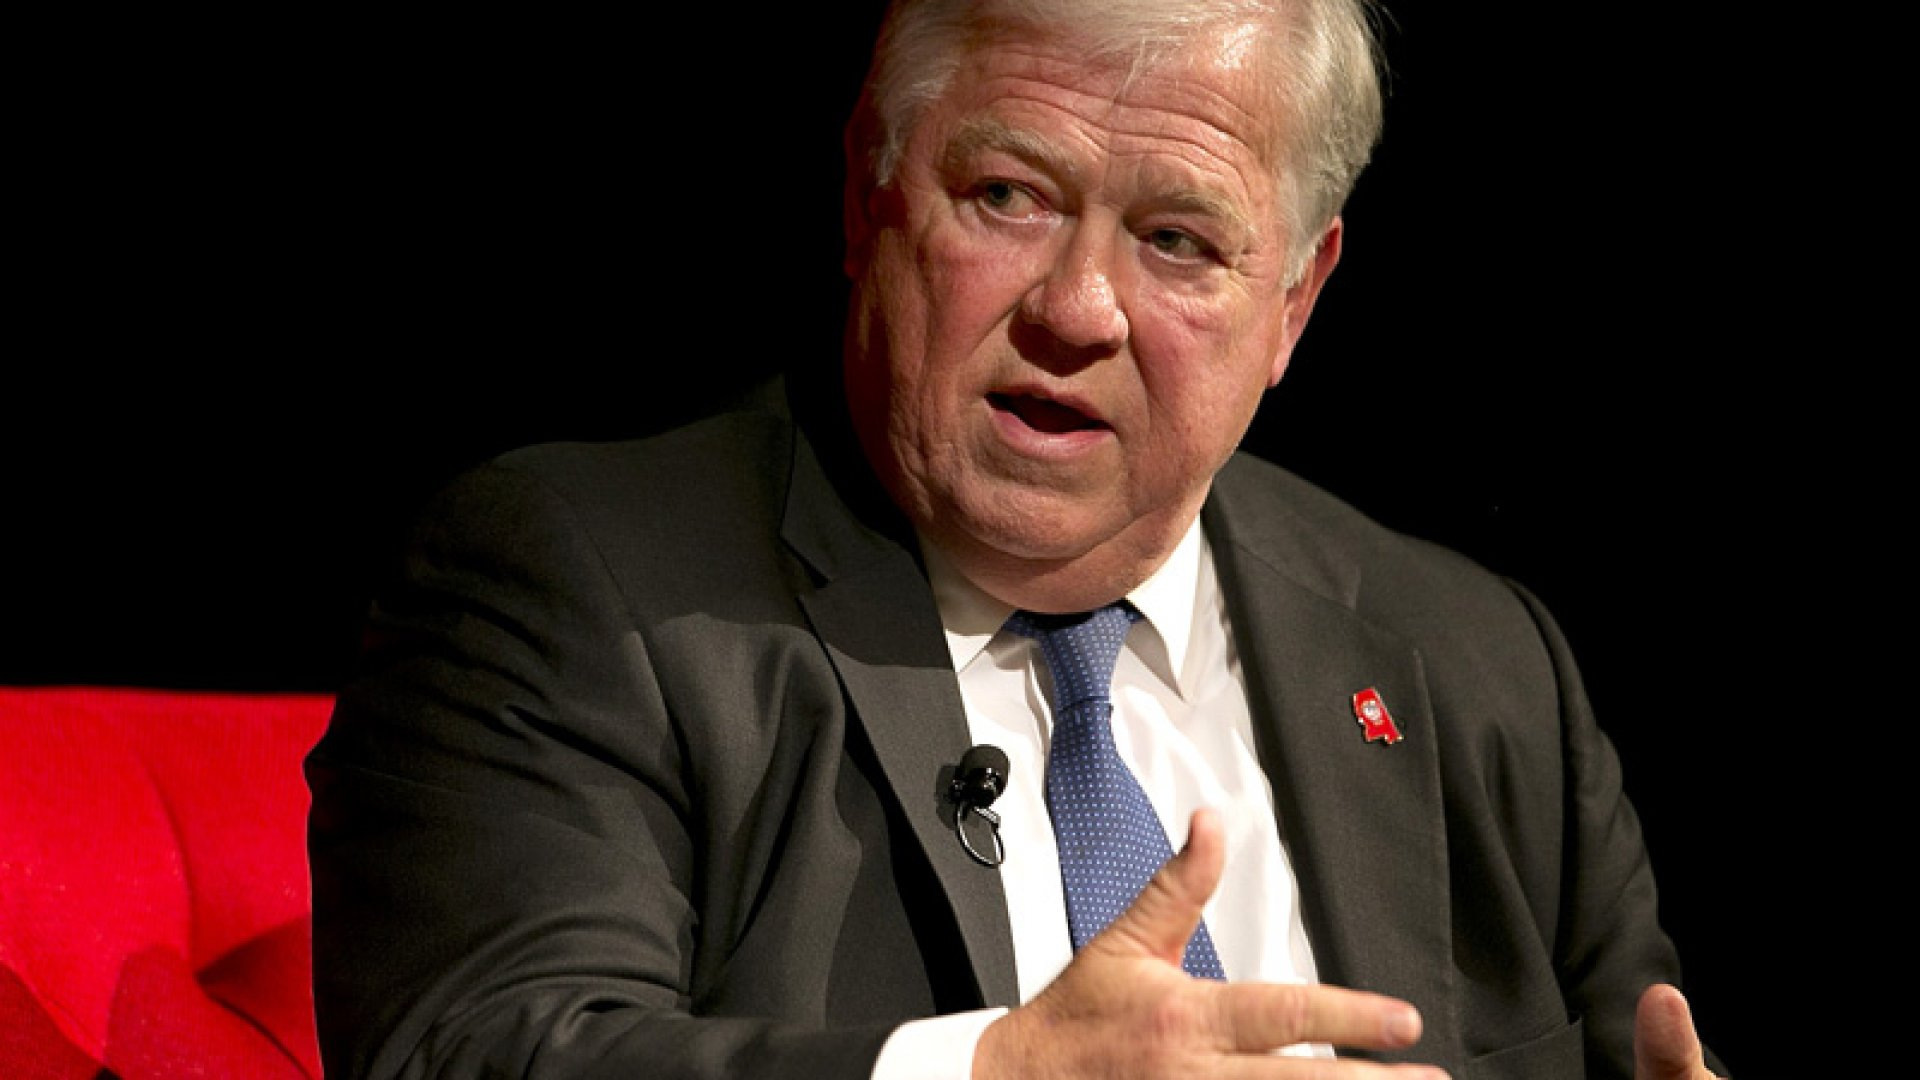 Former Mississippi Governor Haley Barbour has solid ideas on how to get the nation's small businesses working again.